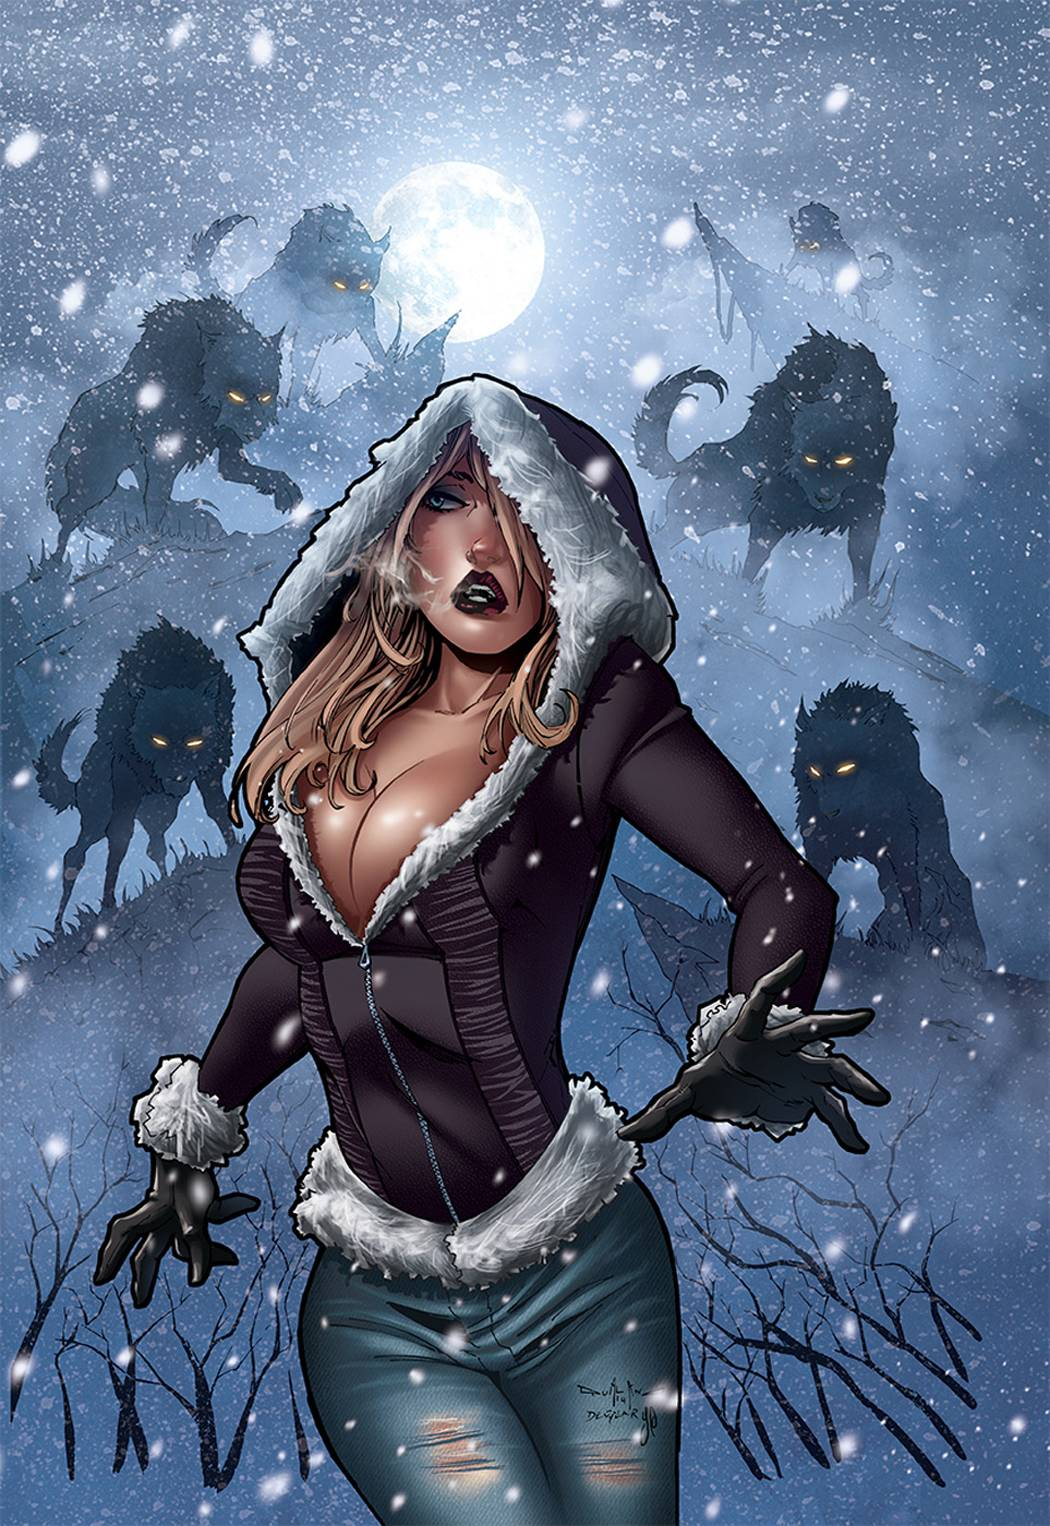 Grimm Fairy Tales Dark Shaman 1 C Cover Qualano ForbiddenPlanet